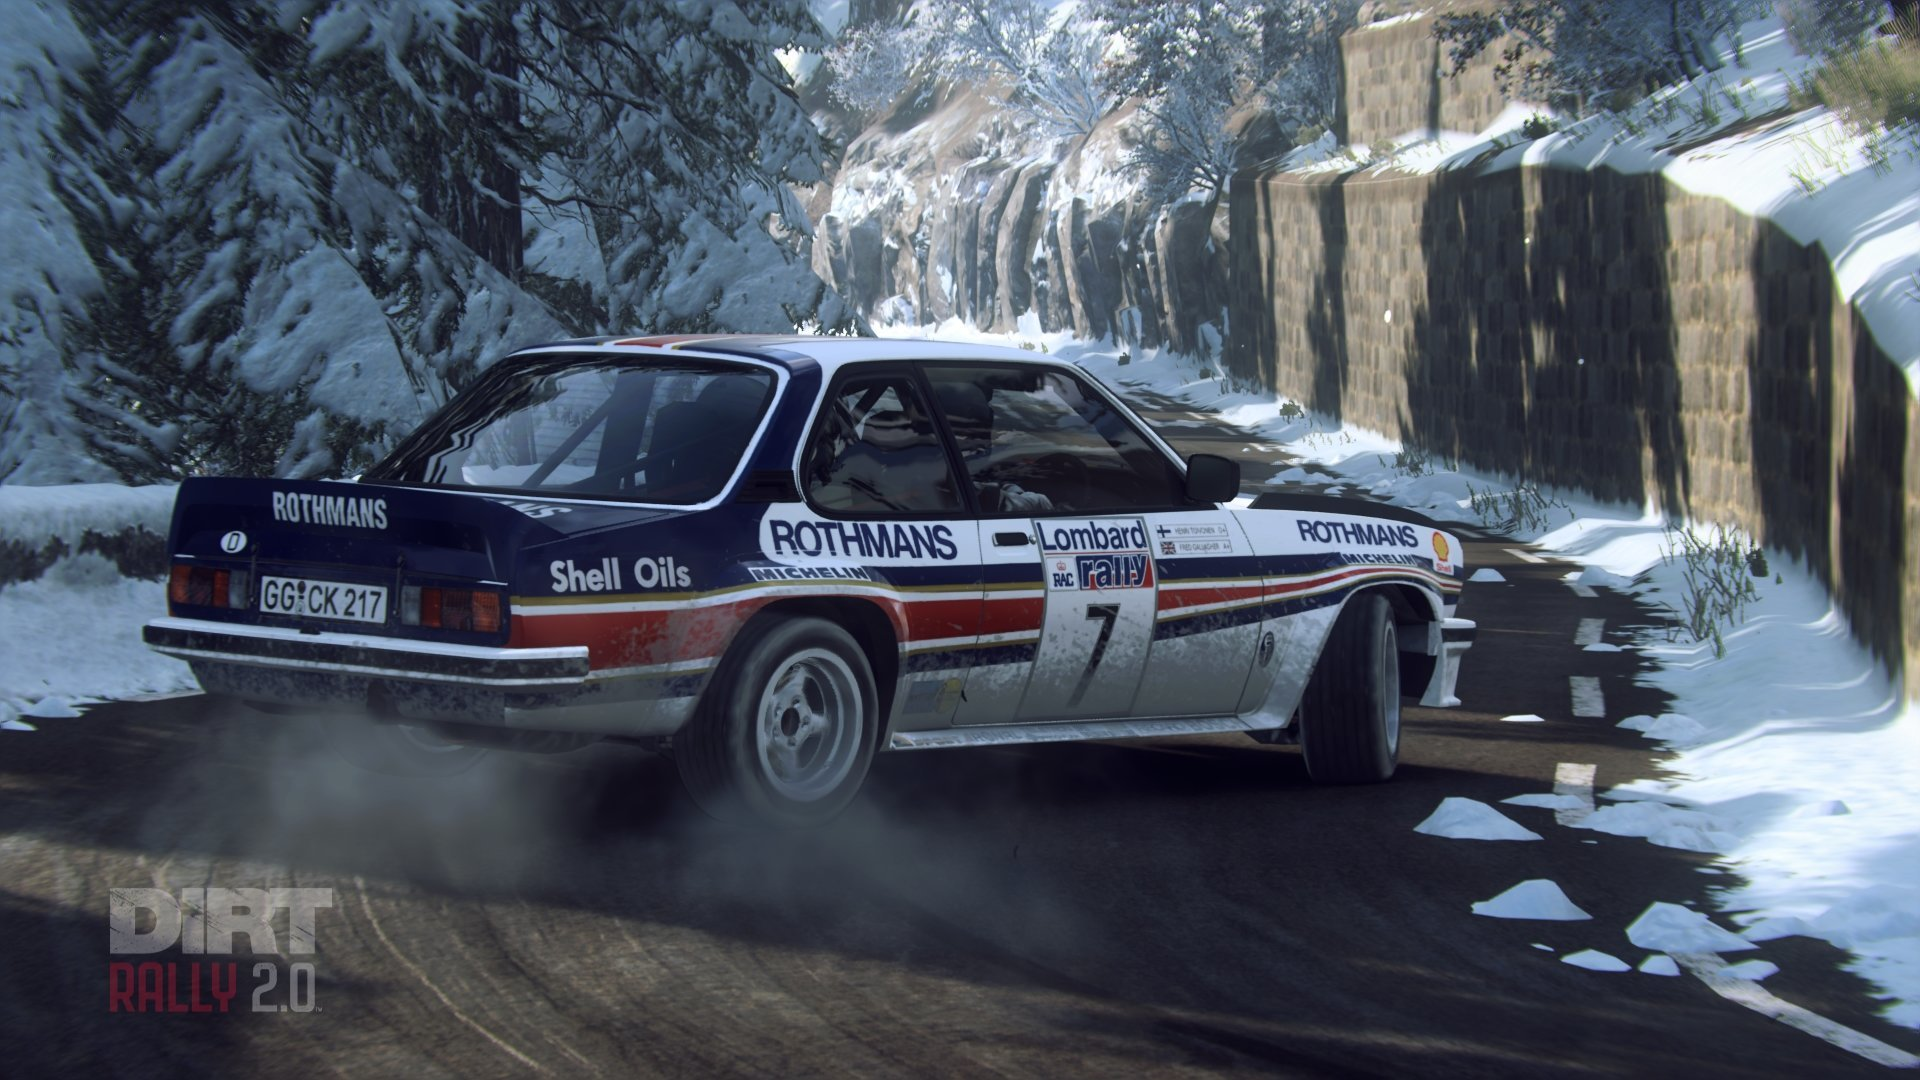 1588012941-dirtrally2-19-04-2020-15-00-5